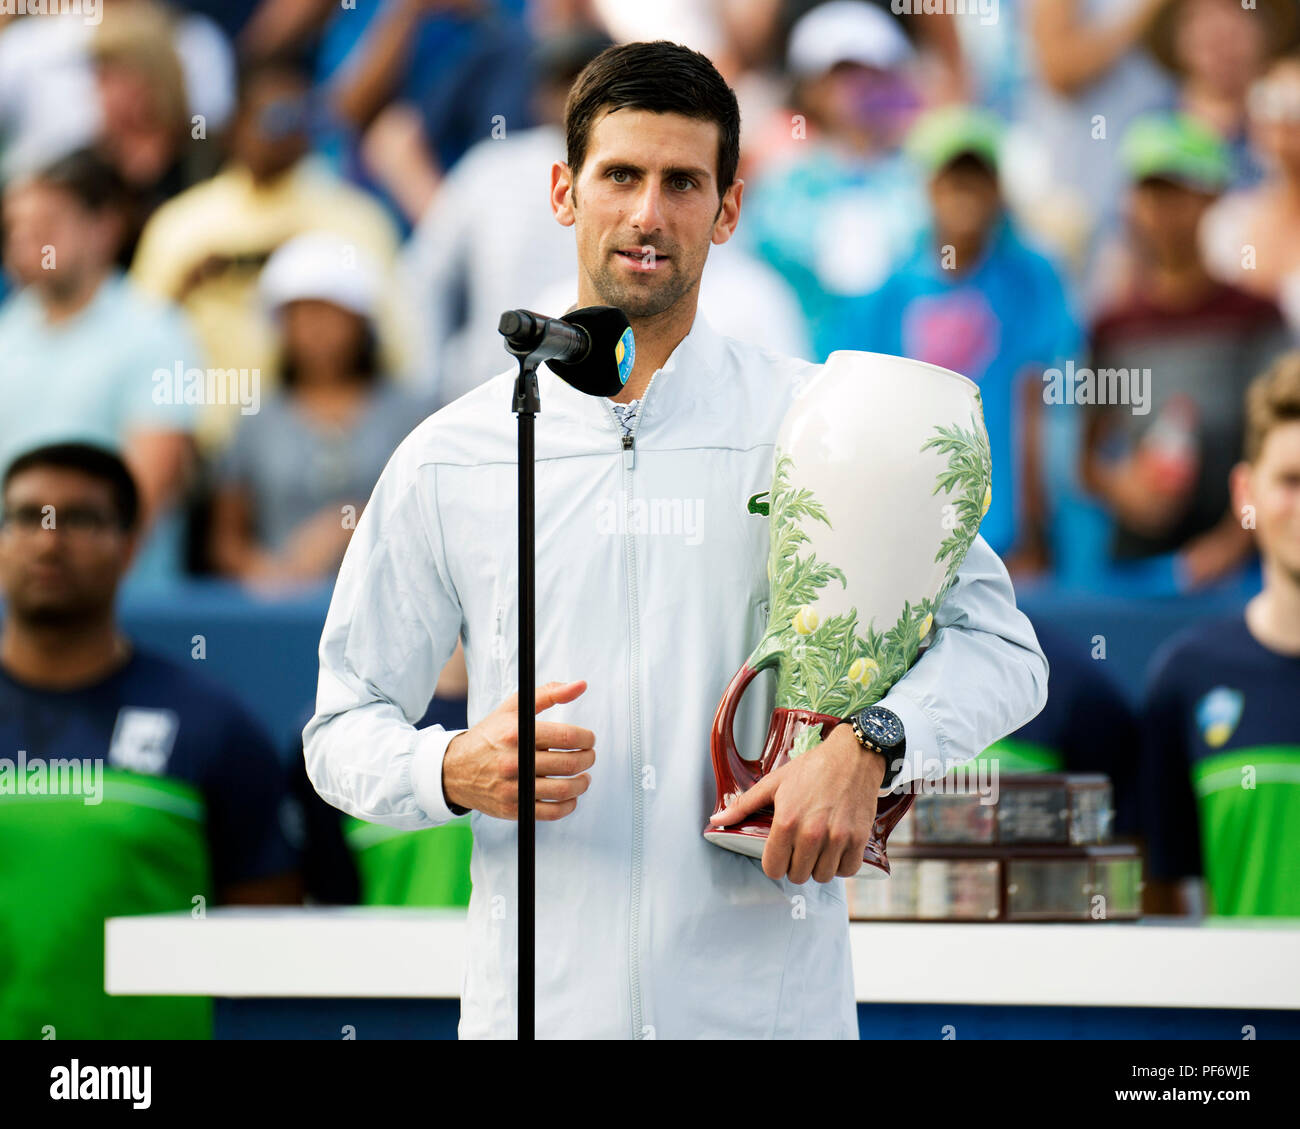 Mason, Ohio, USA. August 19, 2018: Novak Djokovic (SRB) addresses the crowd after his win at the Western Southern Open in Mason, Ohio, USA. Brent Clark/Alamy Live News - Stock Image